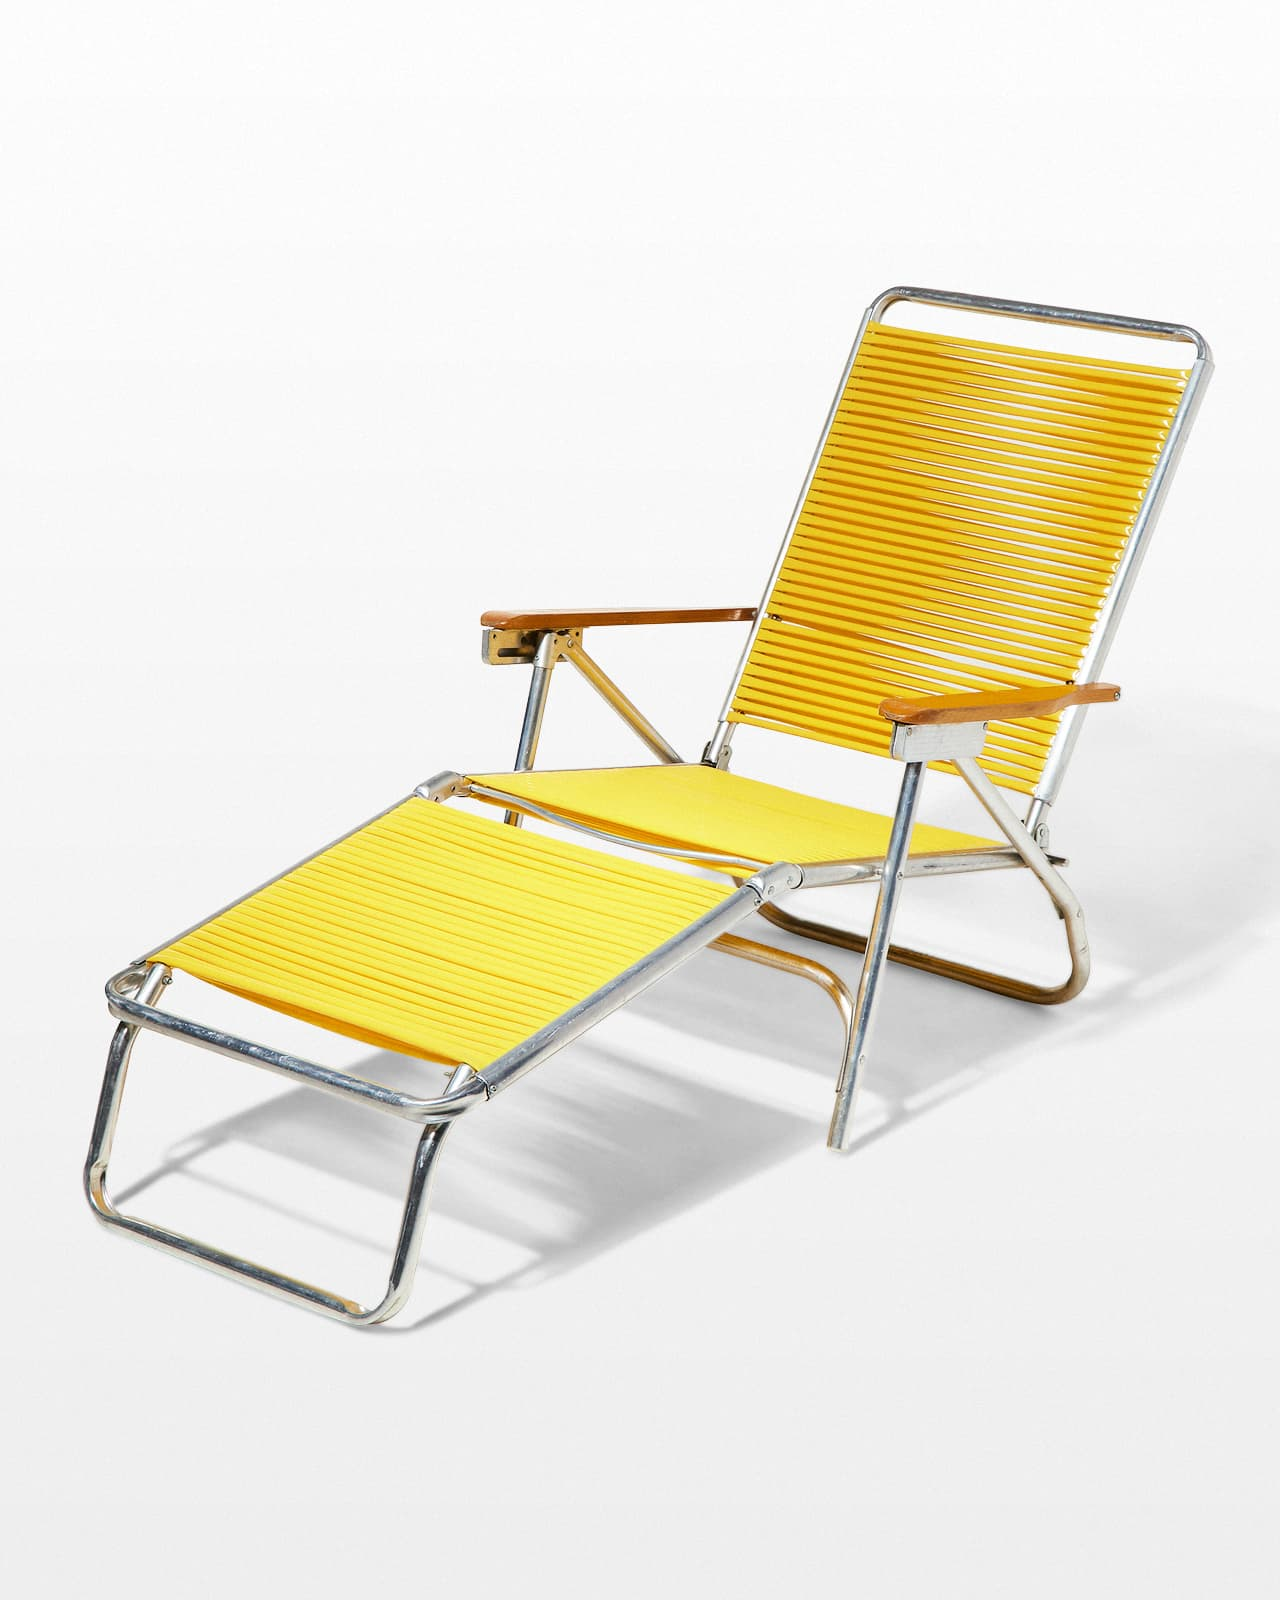 Beach Lounge Chairs Ch379 S Sunshine Beach Chairs And Lounge Prop Rental Acme Brooklyn